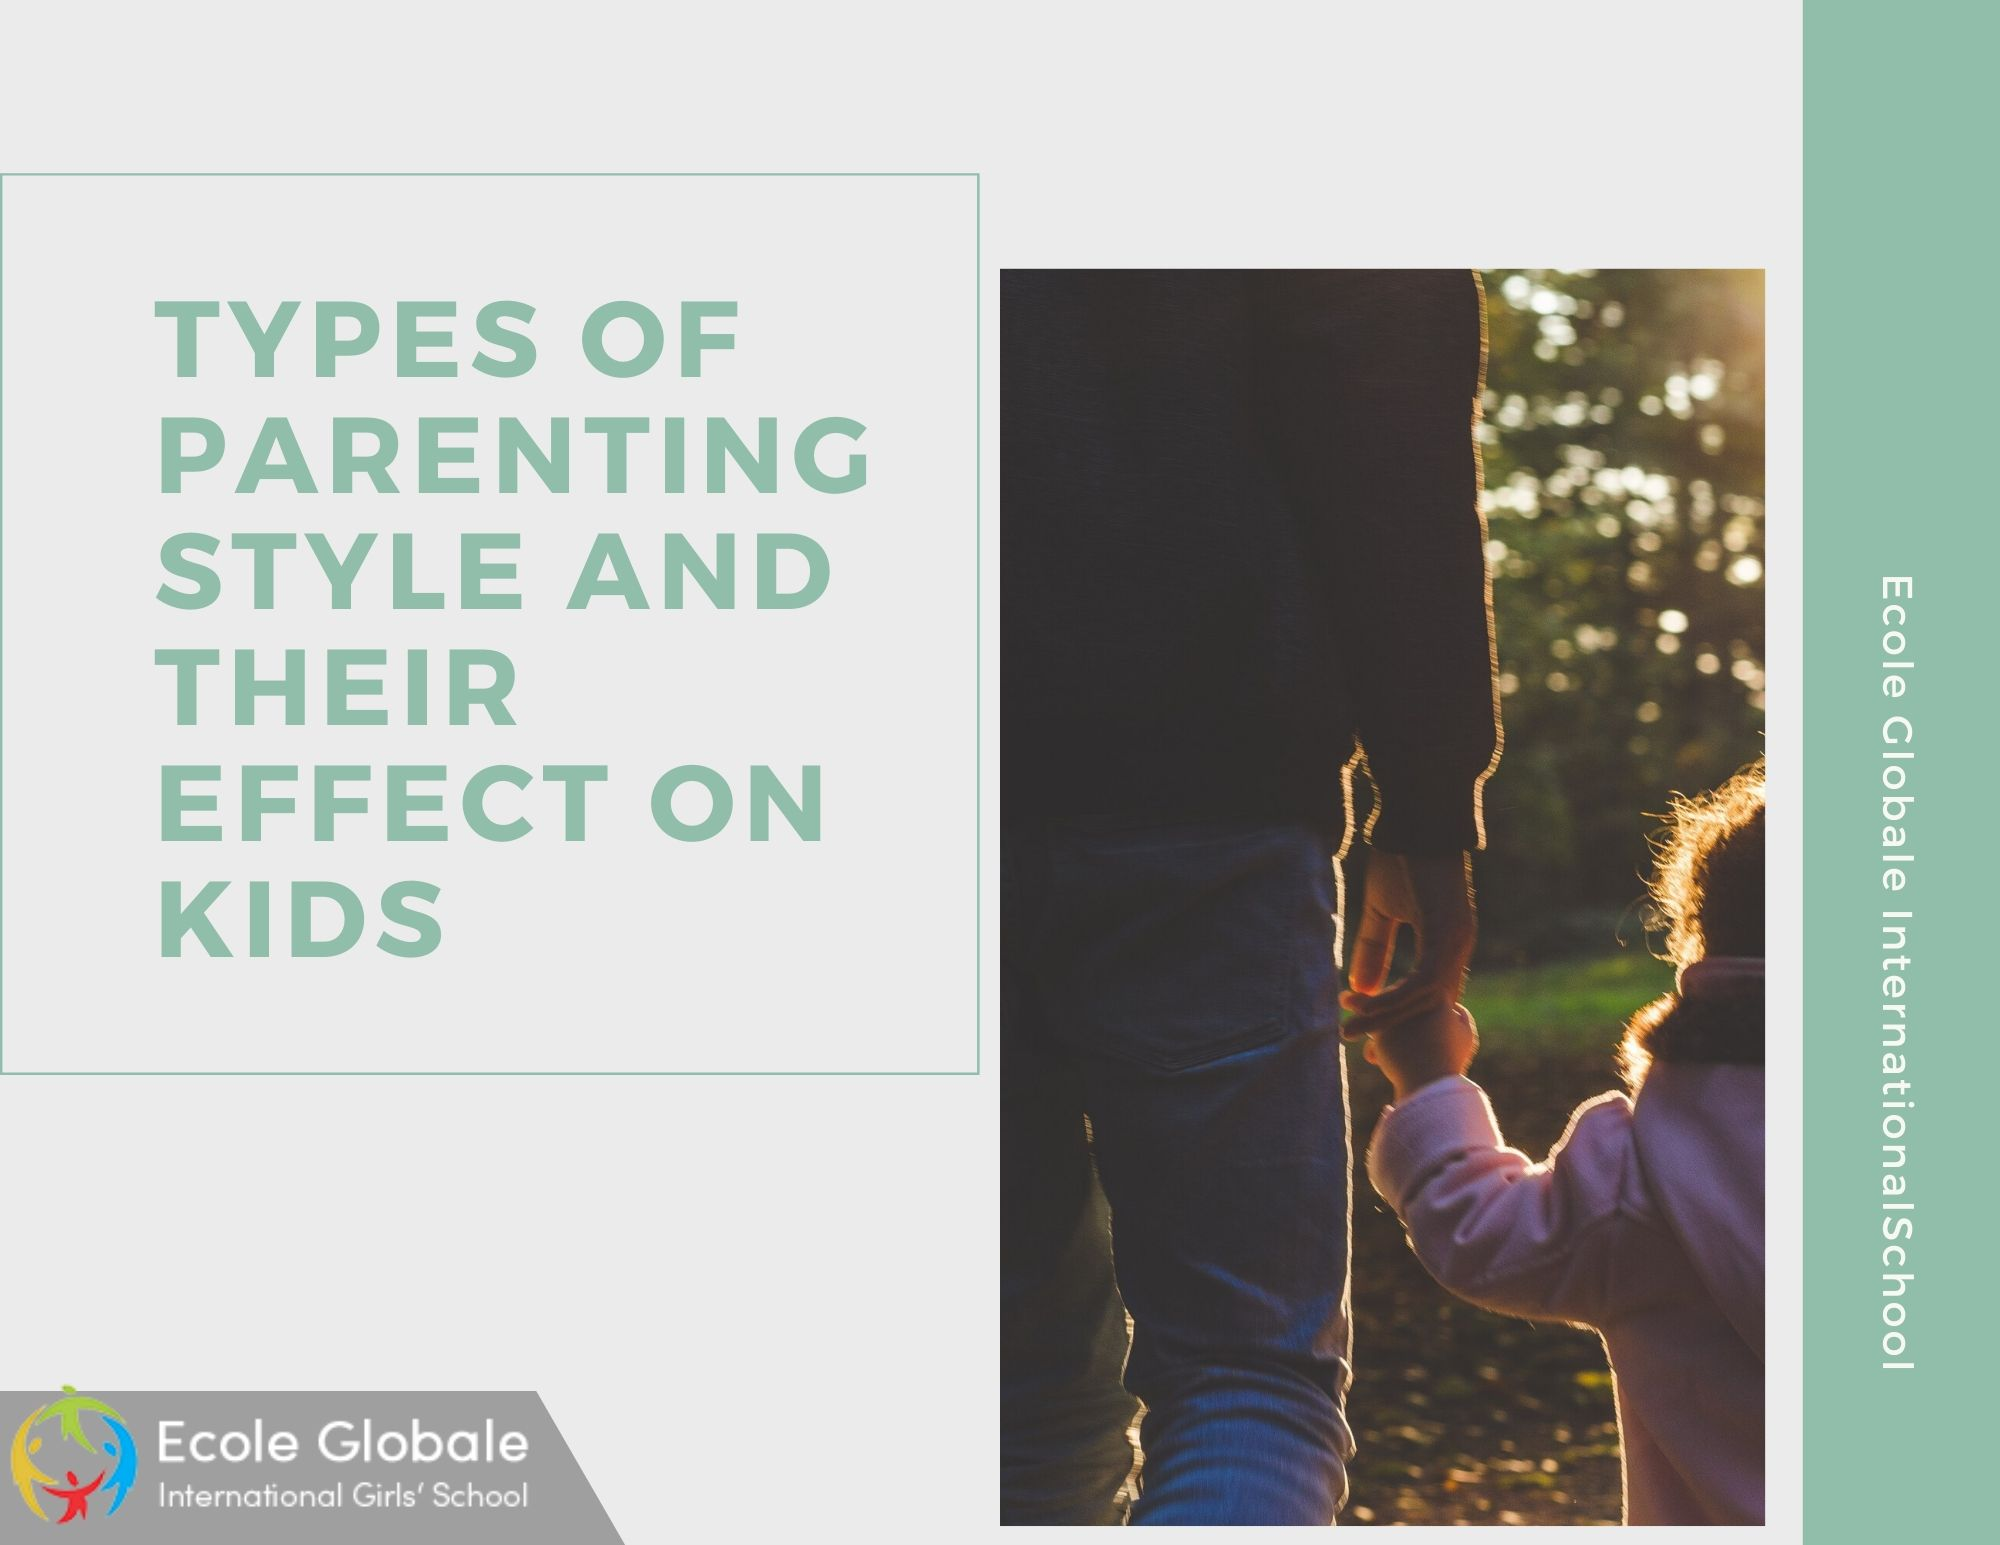 TYPES OF PARENTING STYLE AND THEIR EFFECT ON KIDS